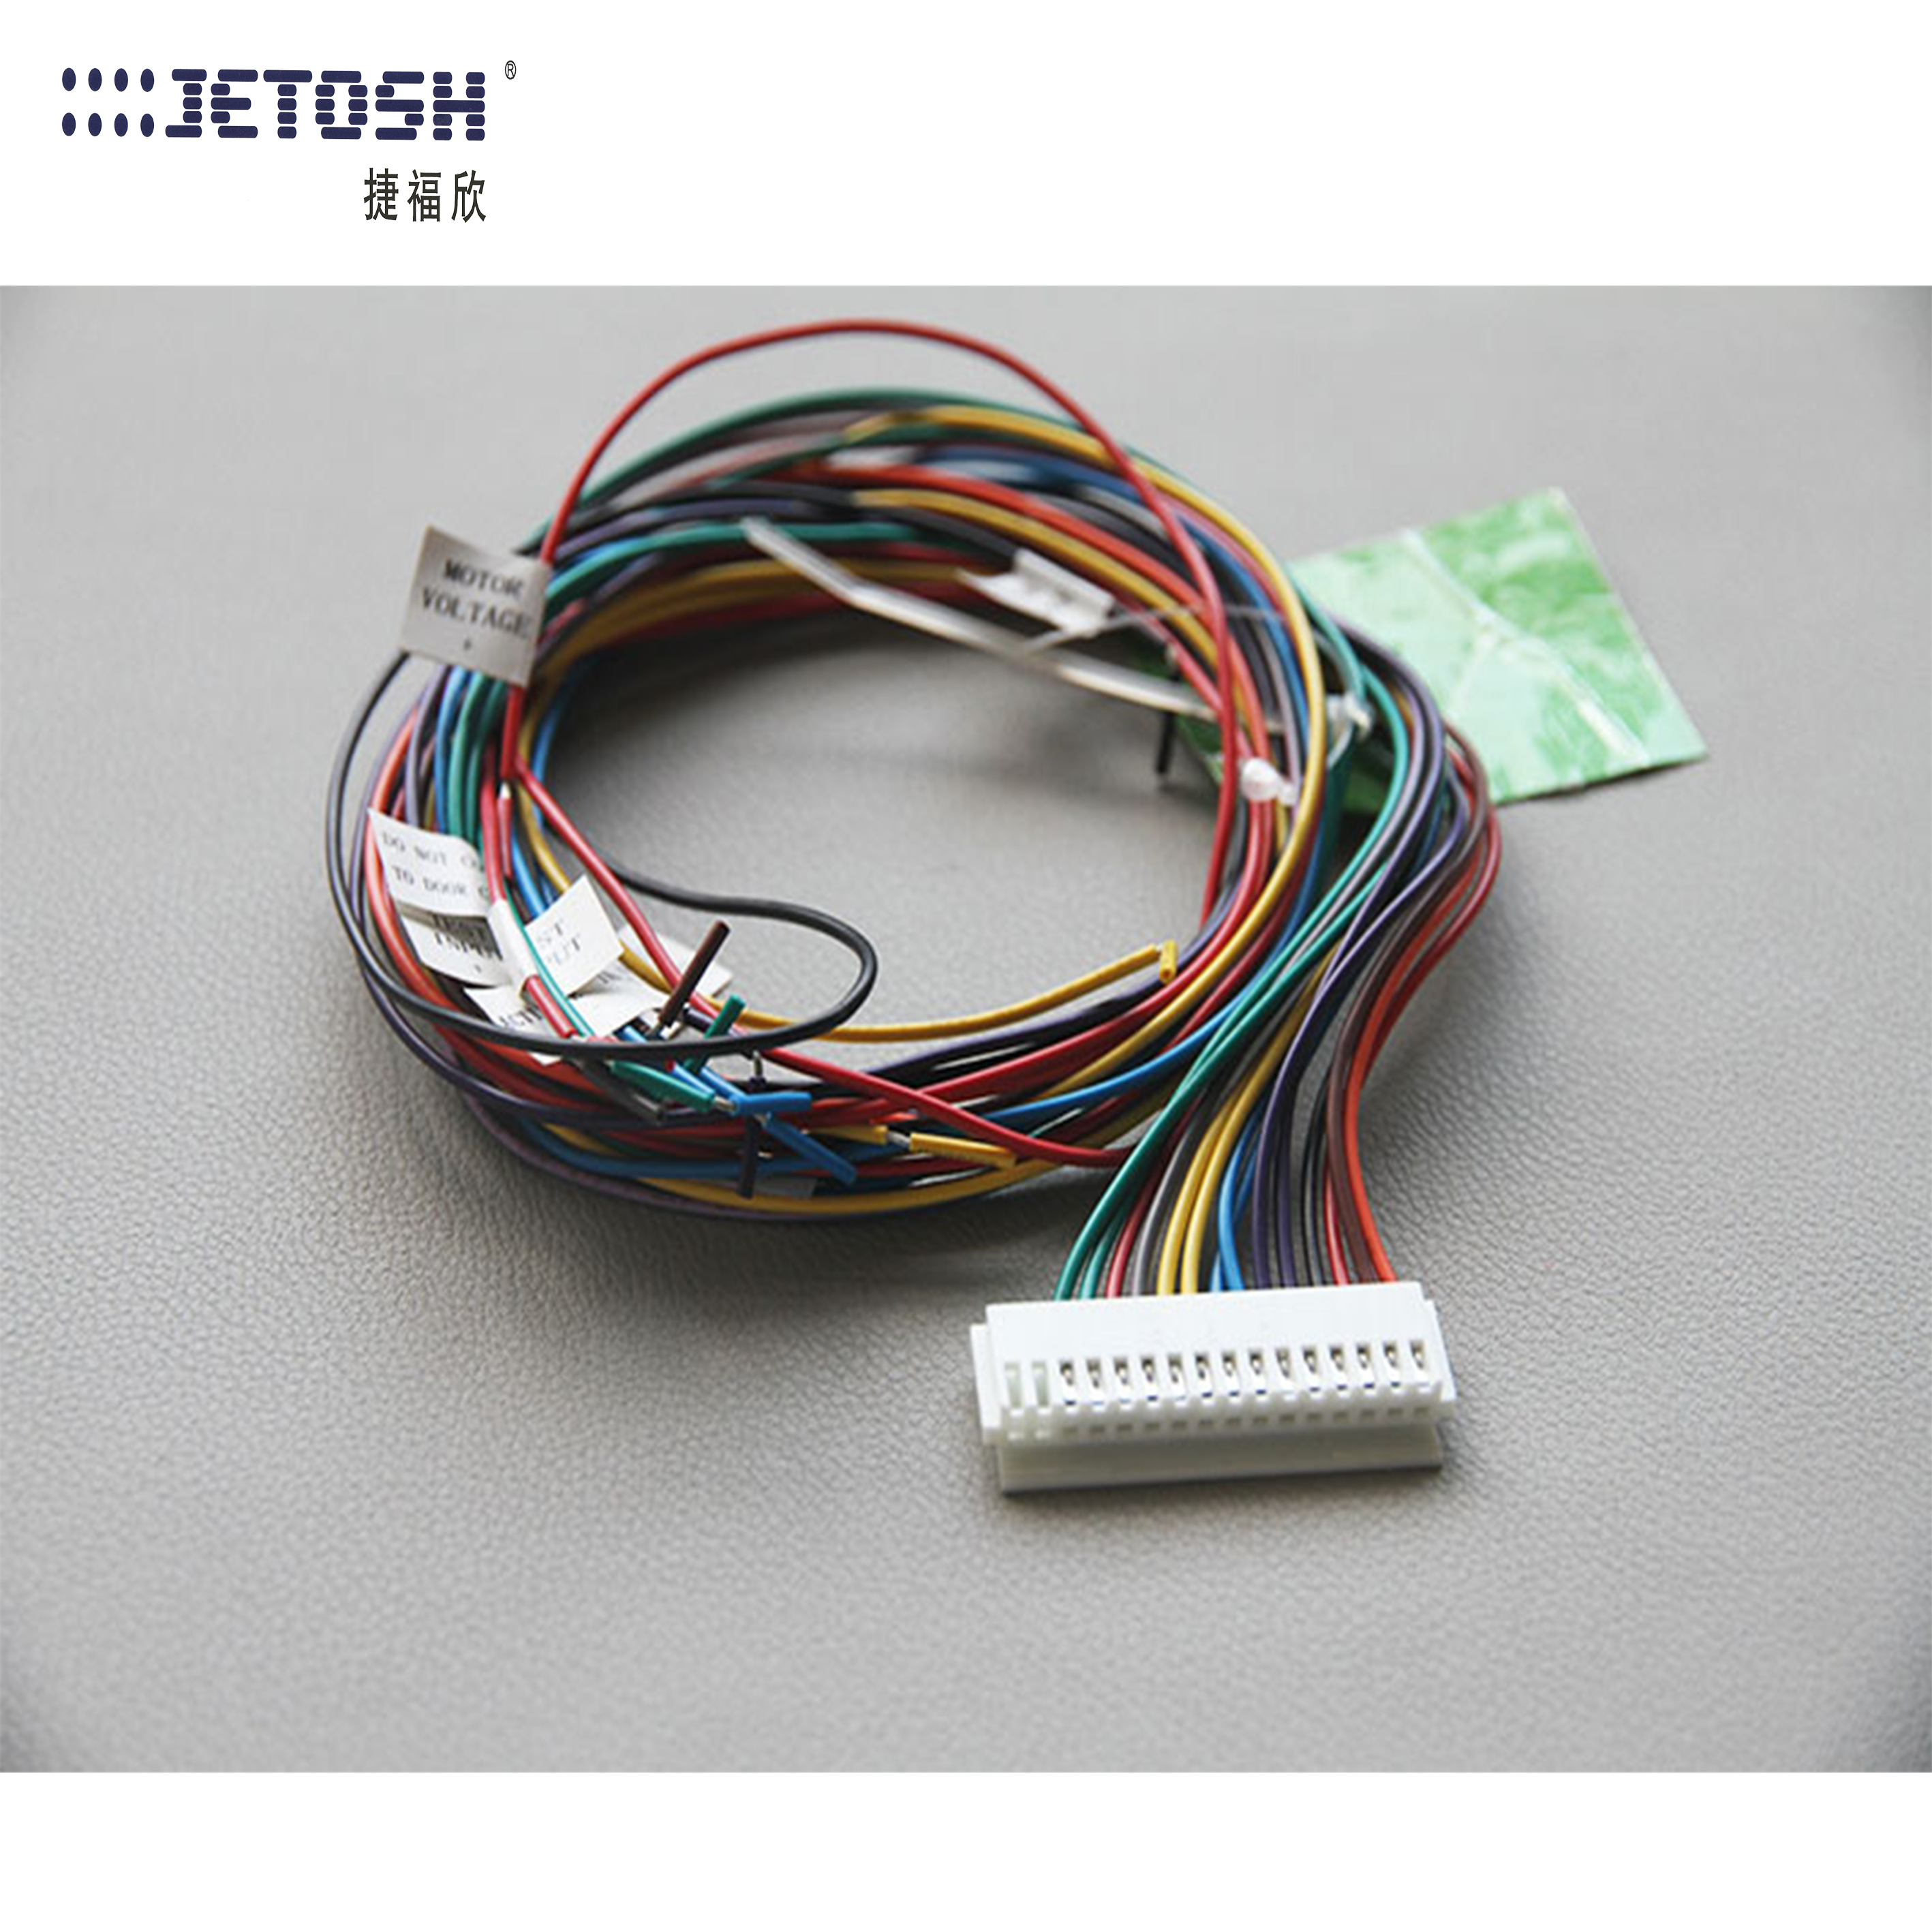 Wire harness for the automatic door